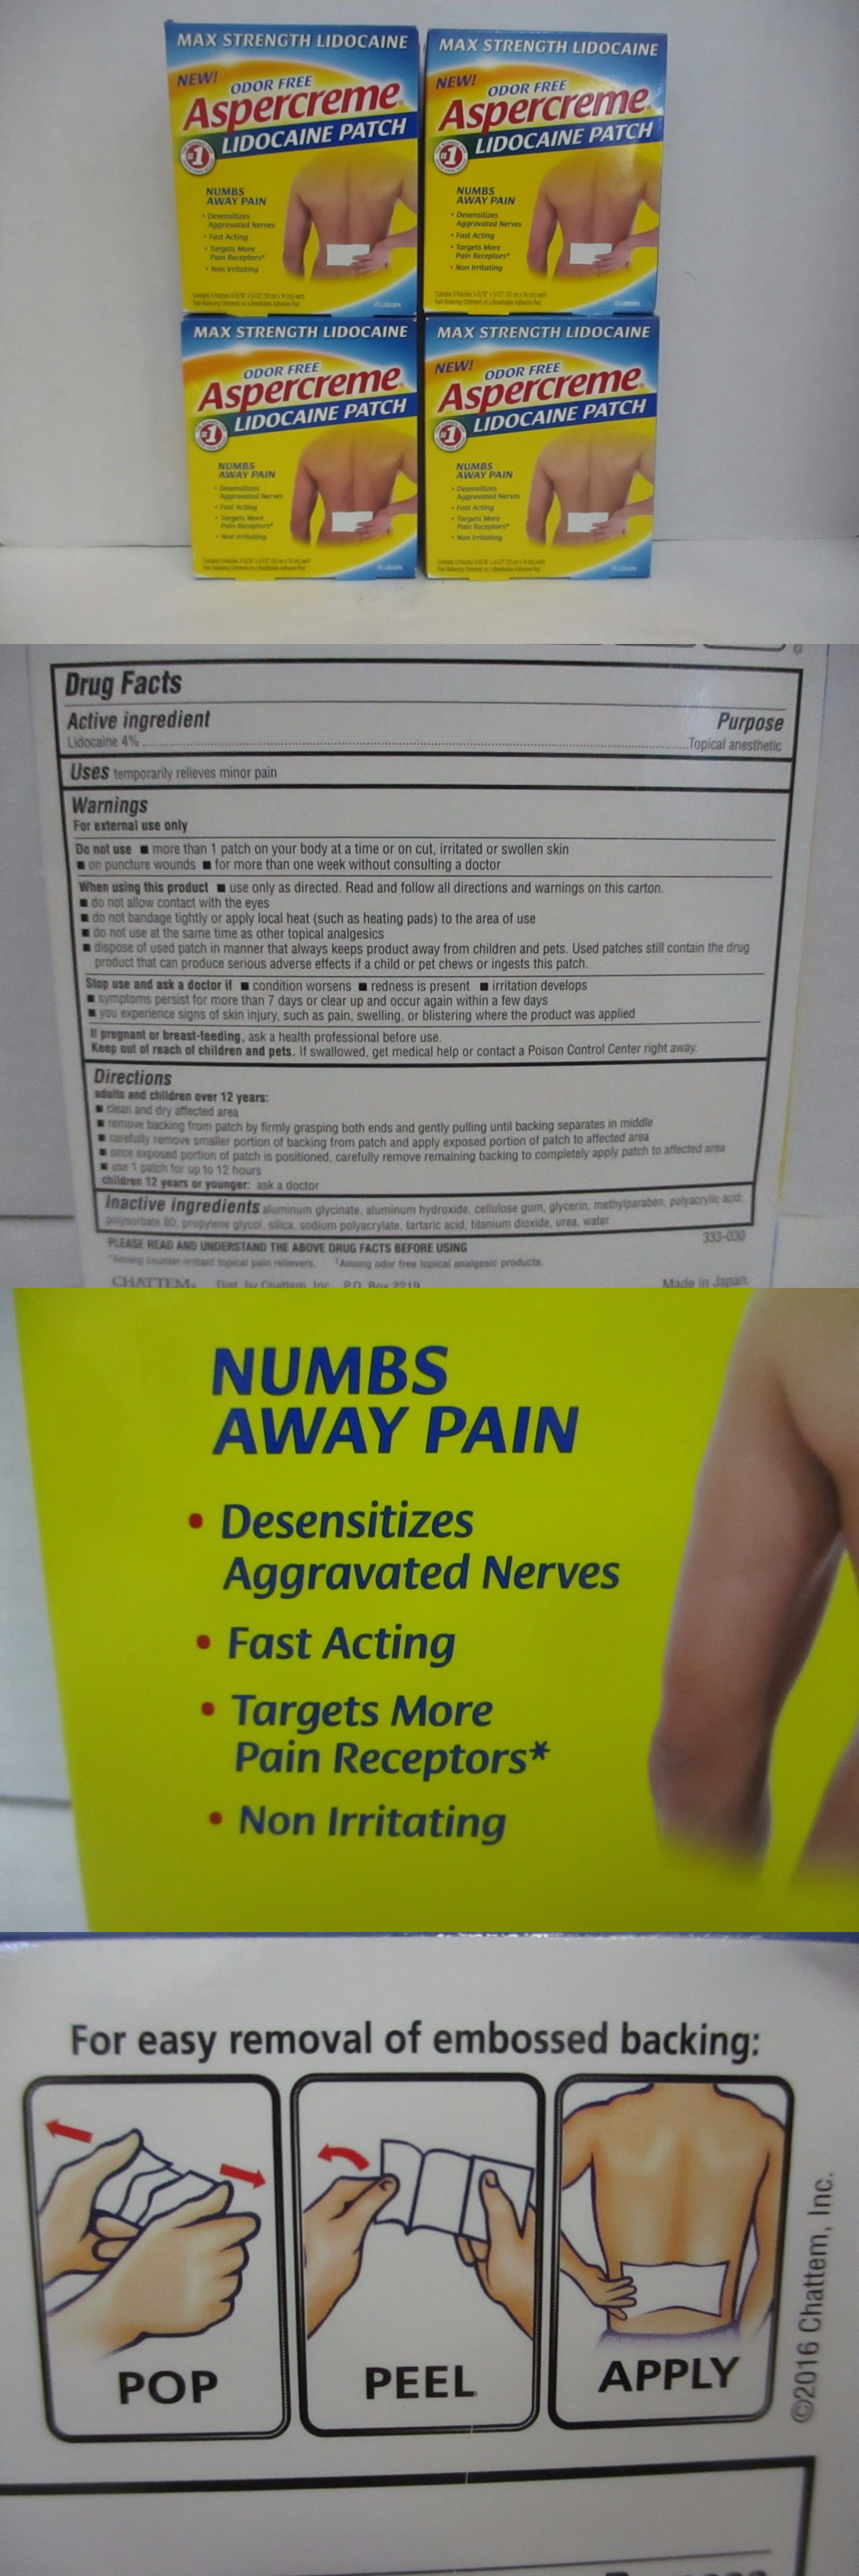 Pain And Fever Relief 4 Aspercreme Lidocaine Pain Patch Max